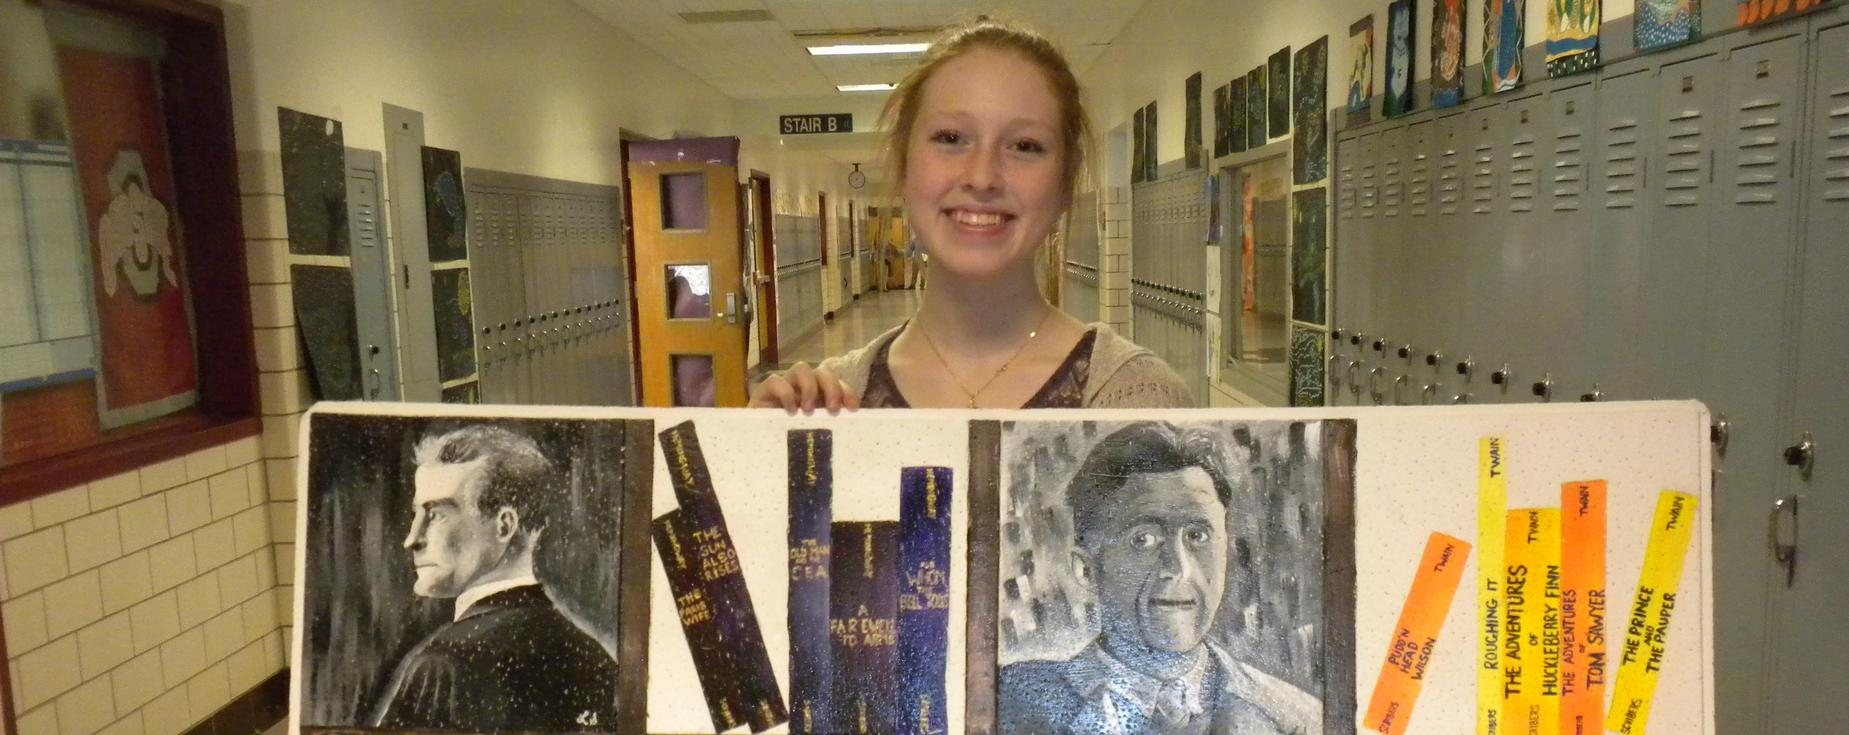 Valley High art student displaying her artwork.